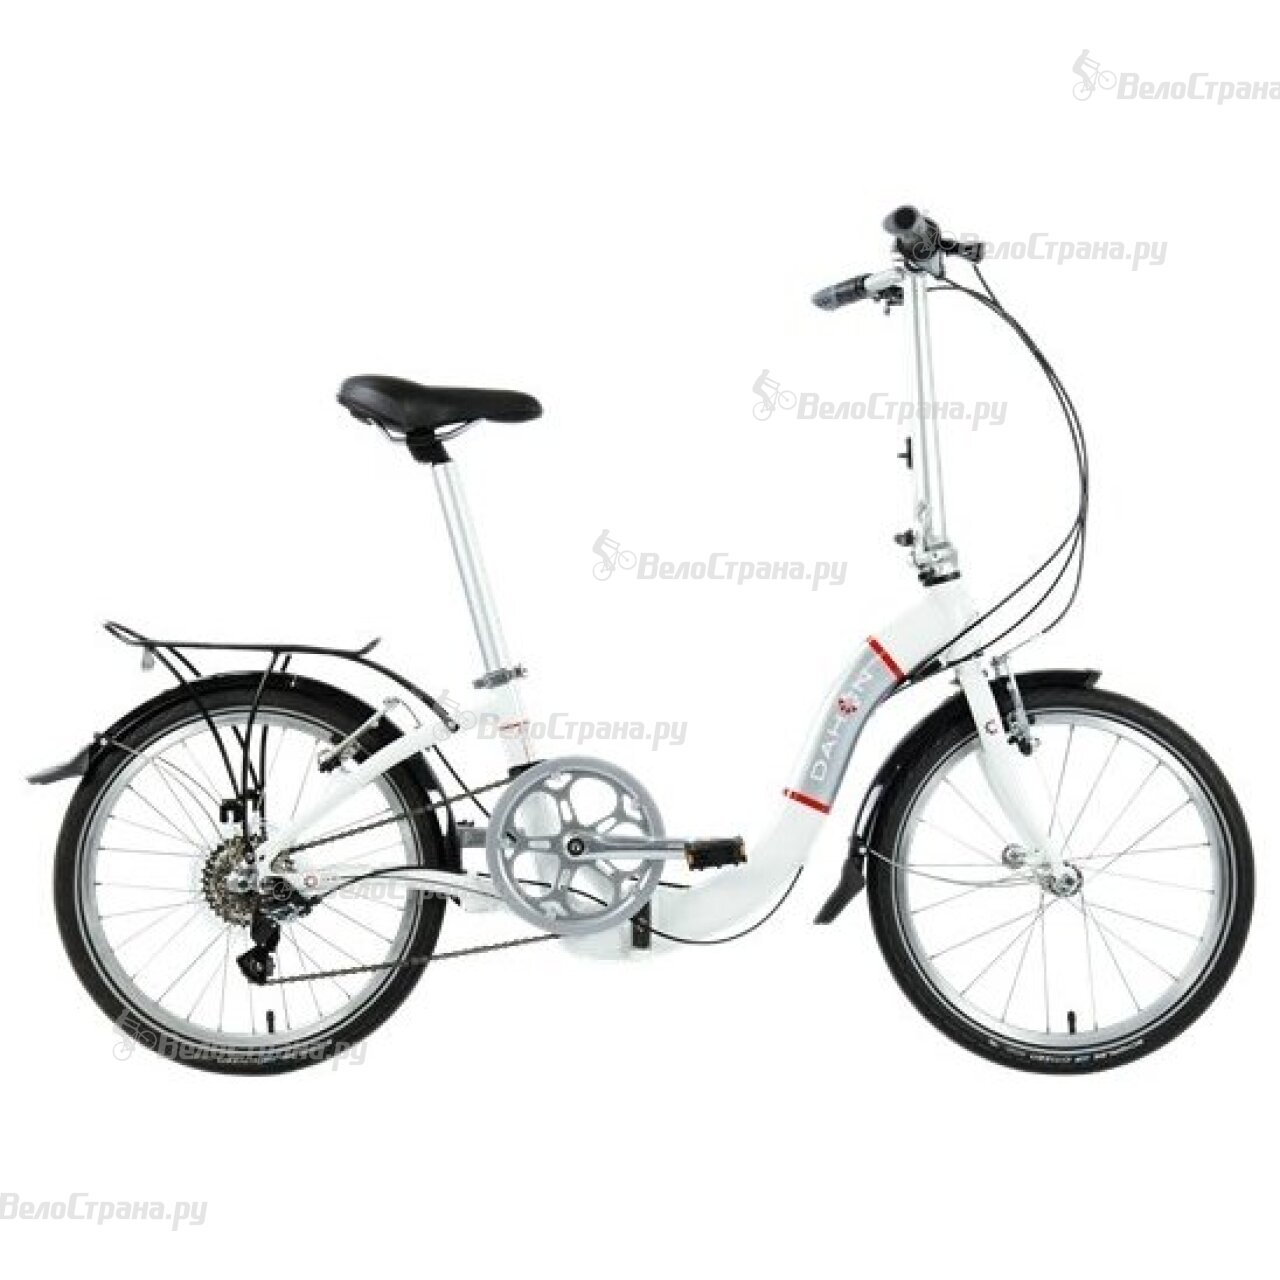 Велосипед Dahon Ciao D7 (2017) велосипед dahon speed d7 2016